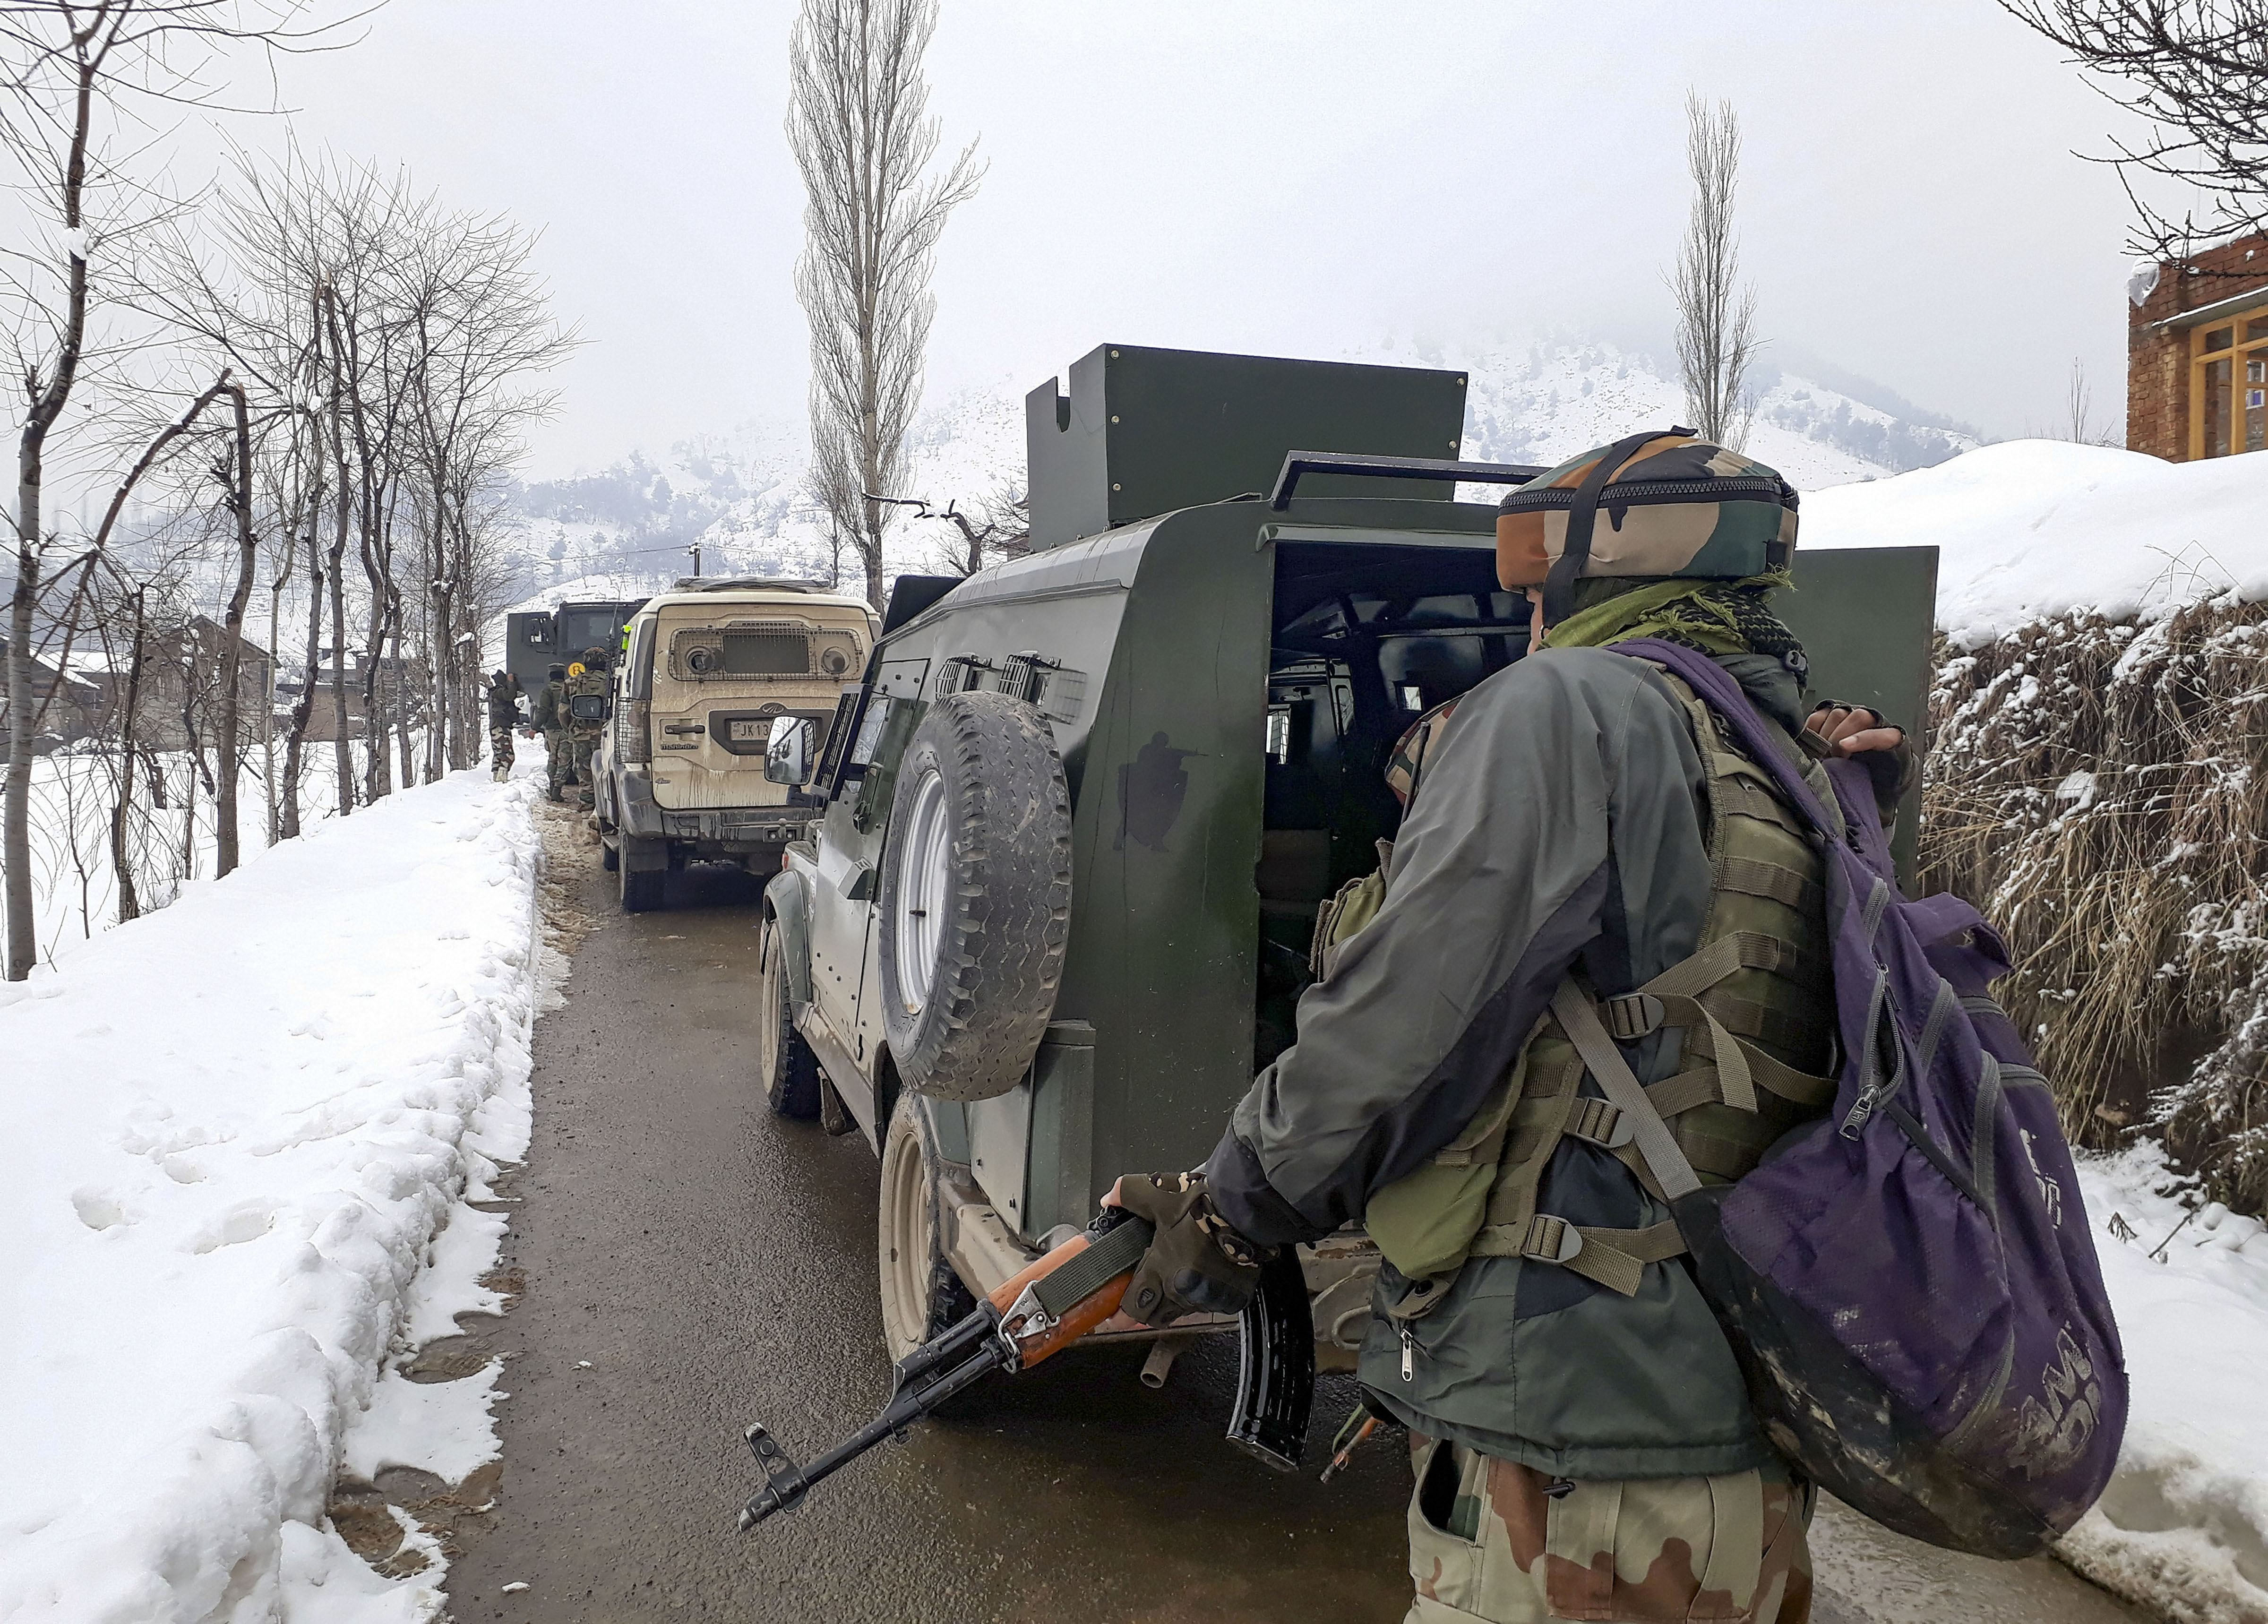 Indian Army personnel stand guard during a search and cordon operation at the Khrew area of Pulwama district in Jammu and Kashmir, Tuesday, January 21, 2020.